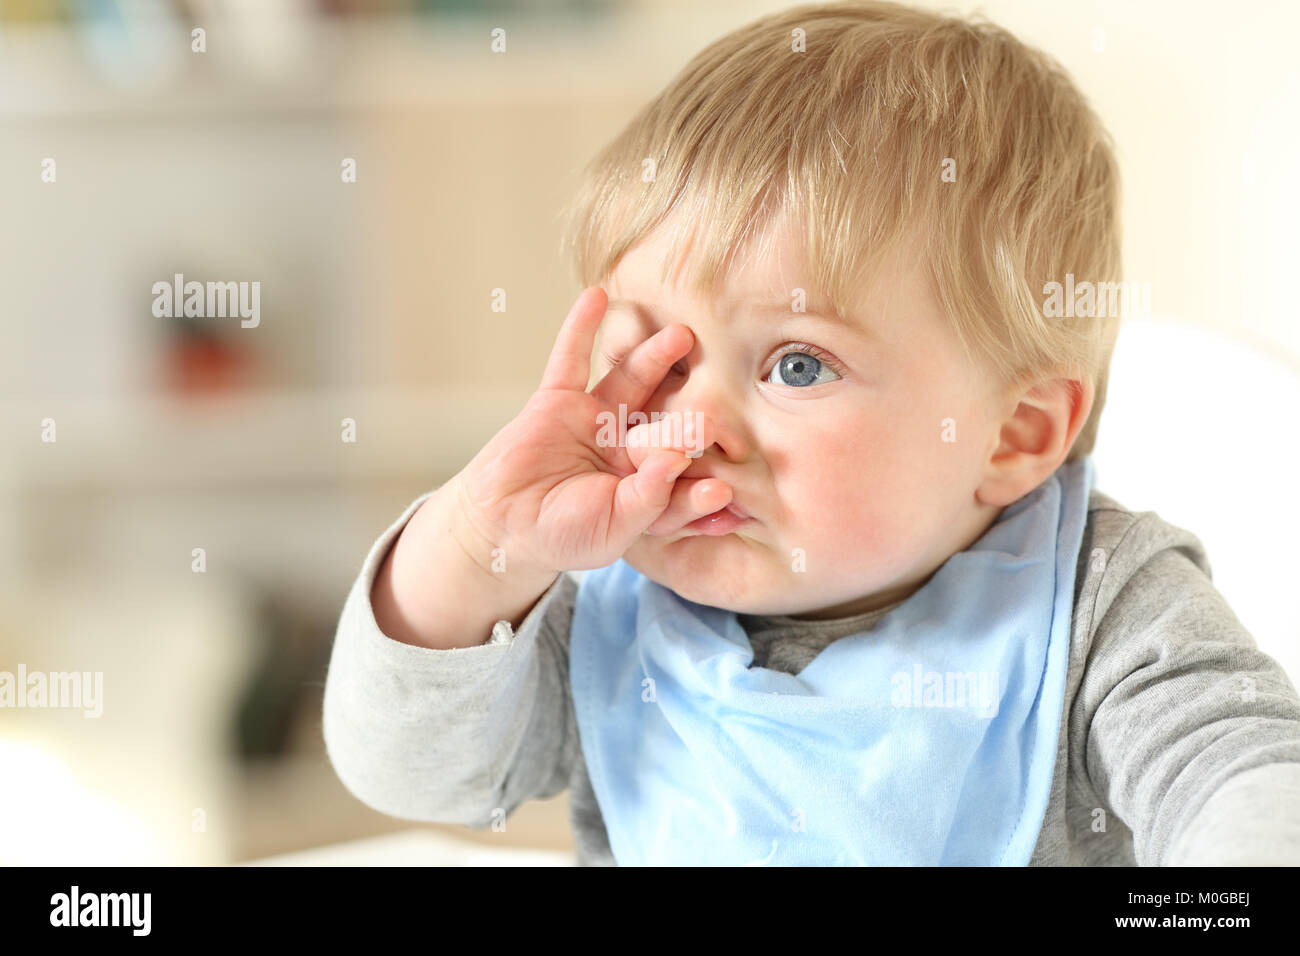 Portrait of a cute baby grimacing with a hand on the face at home - Stock Image